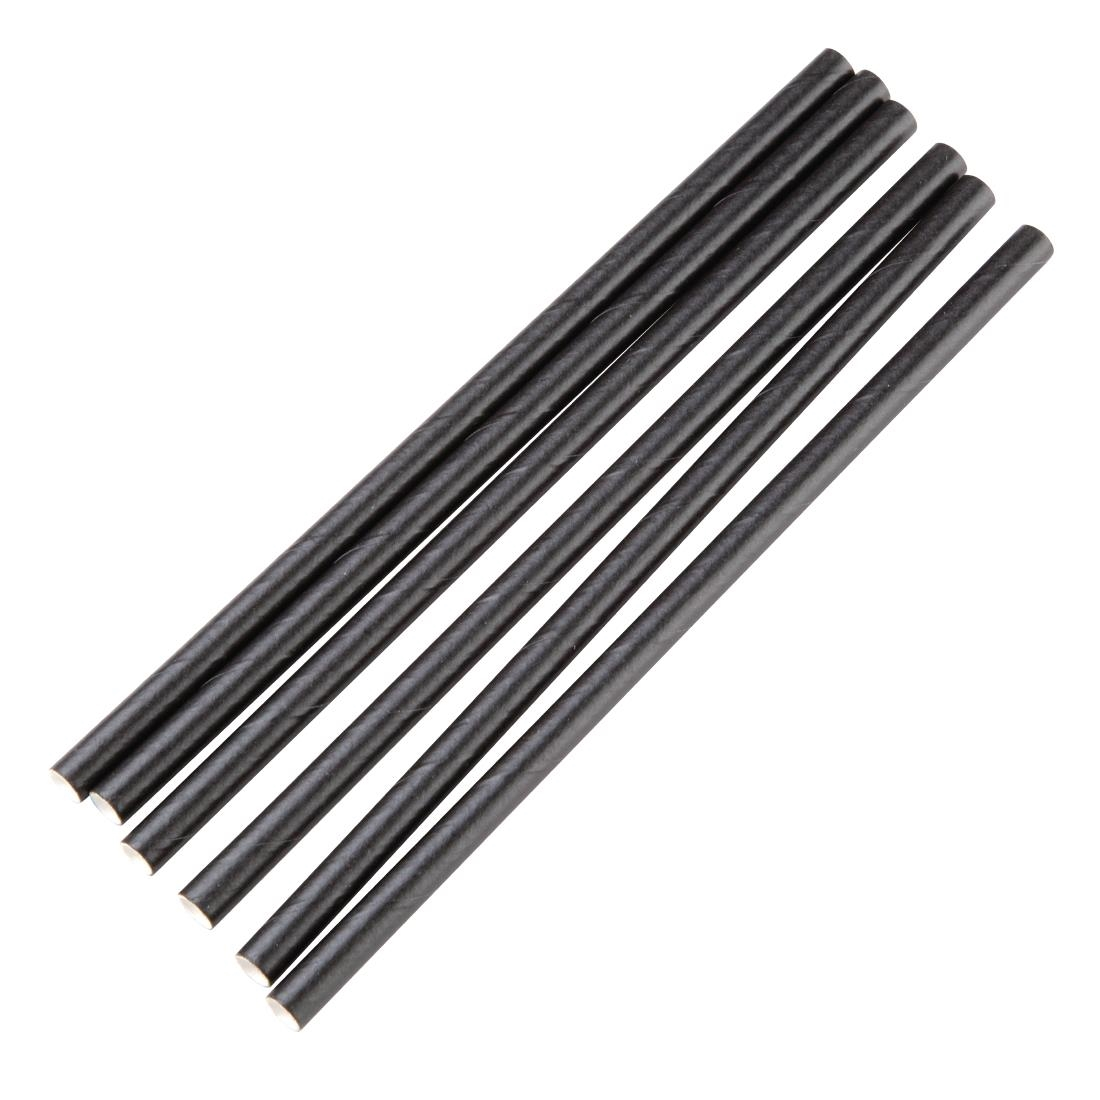 Image of Fiesta Green Individually Wrapped Compostable Paper Cocktail Stirrer Straws Black (Pack of 250)